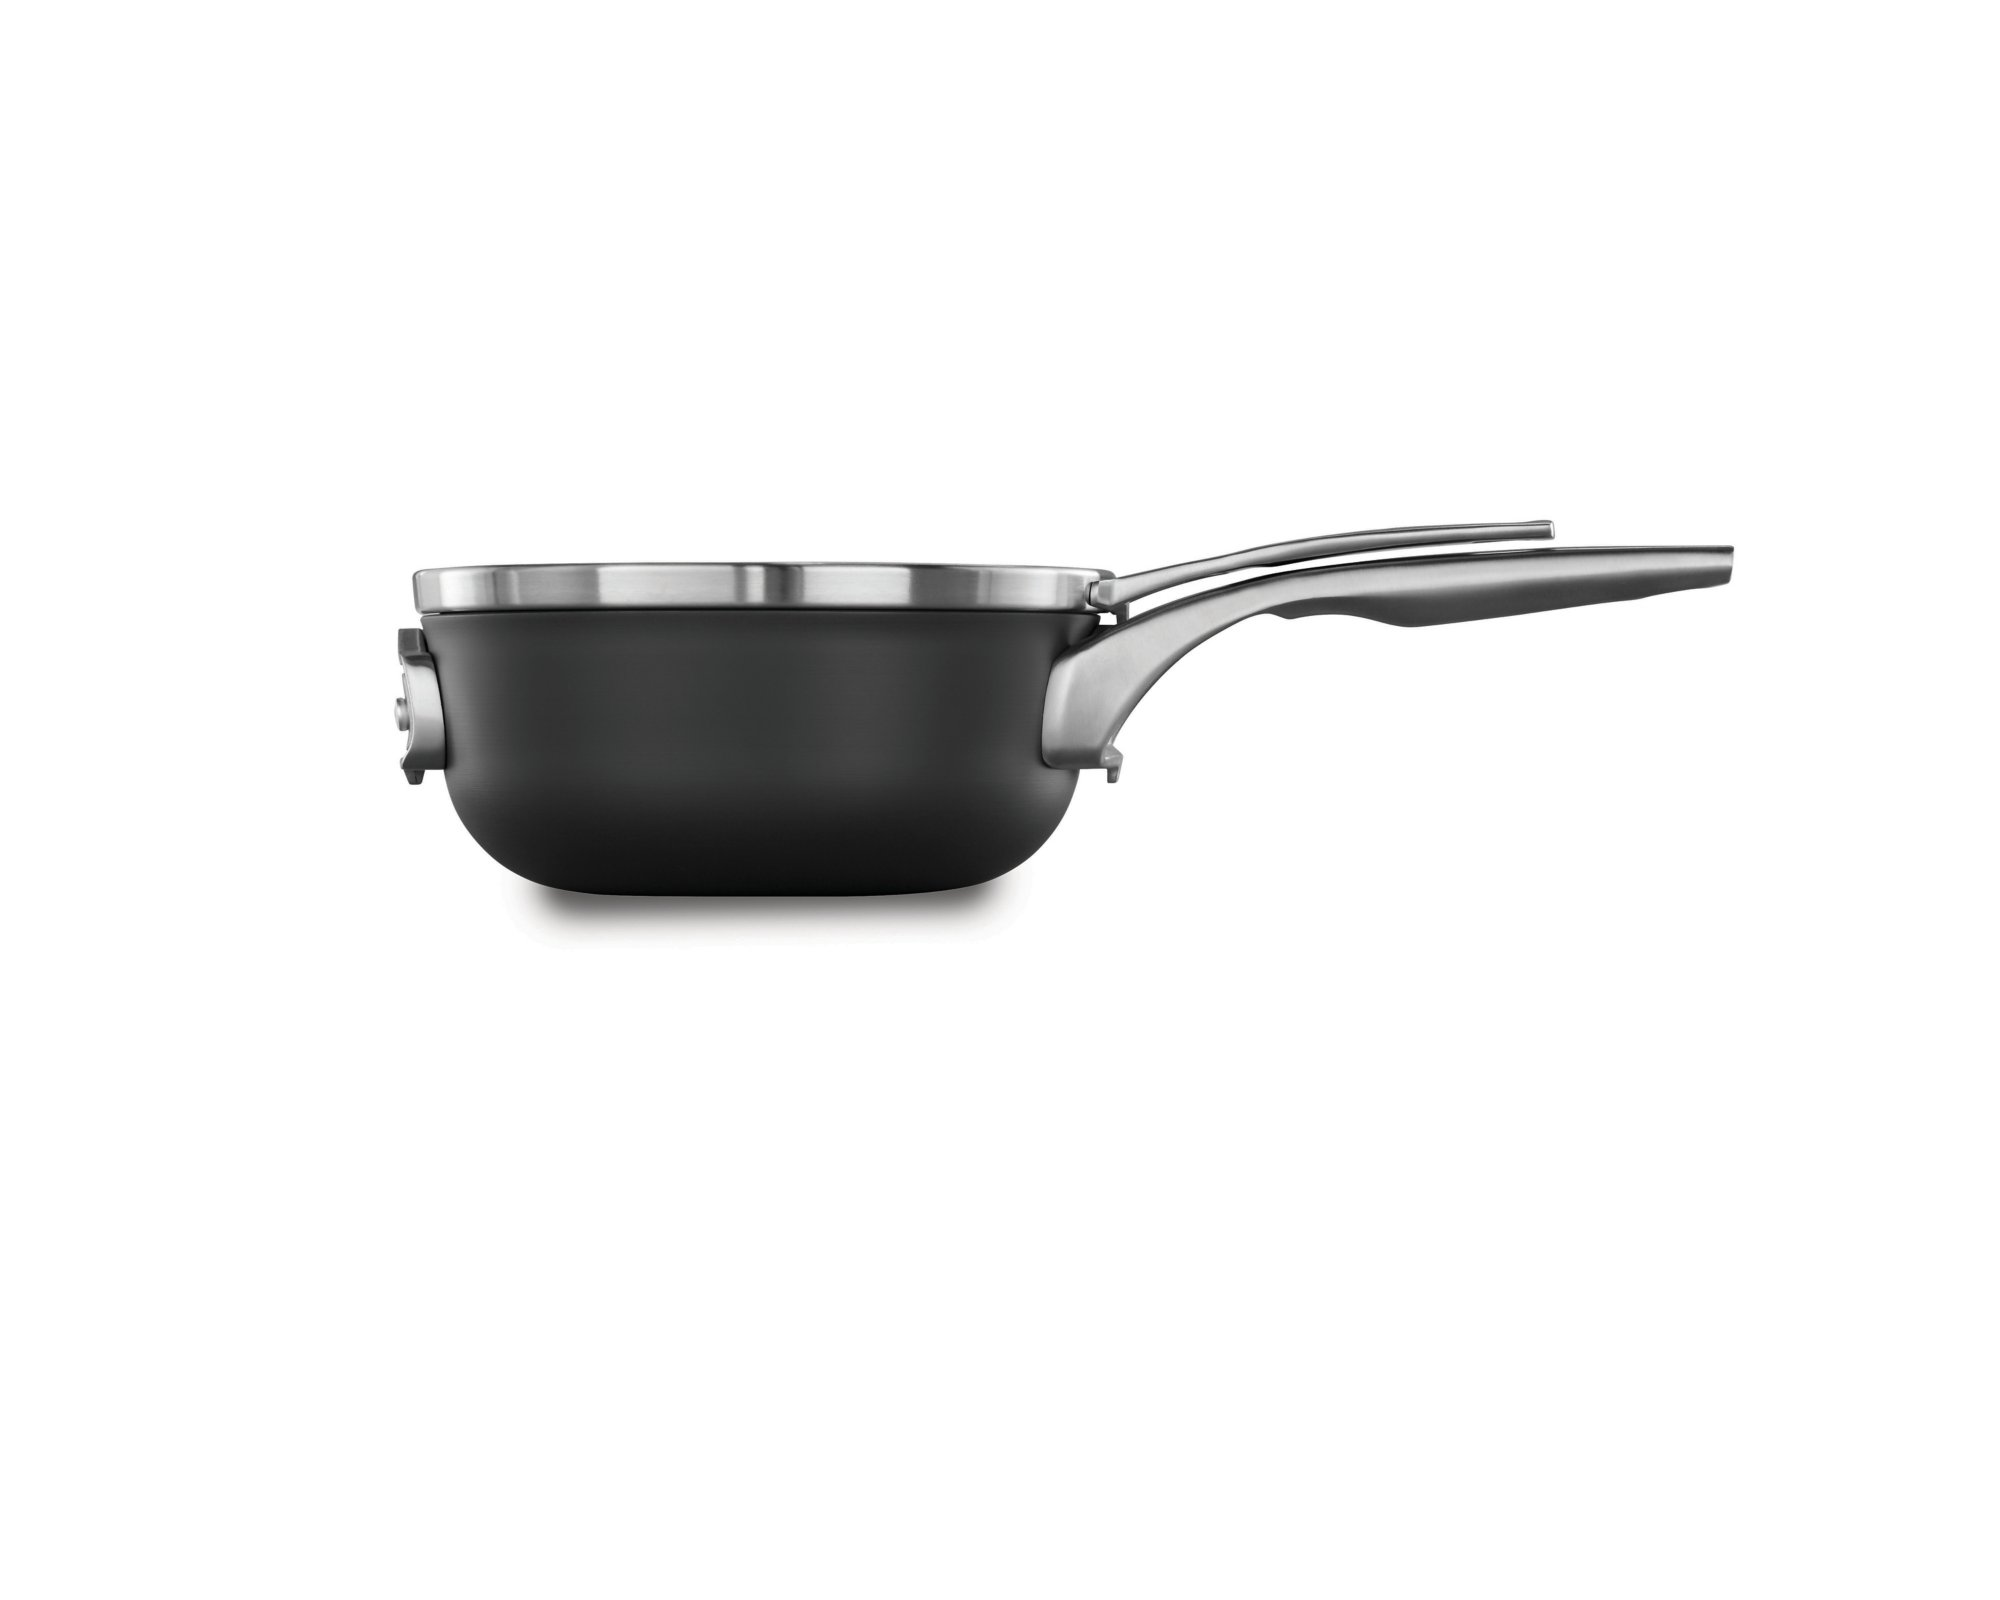 Calphalon Premier? Space Saving Hard Anodized Nonstick 2.5 qt. Chef's Pan with Cover